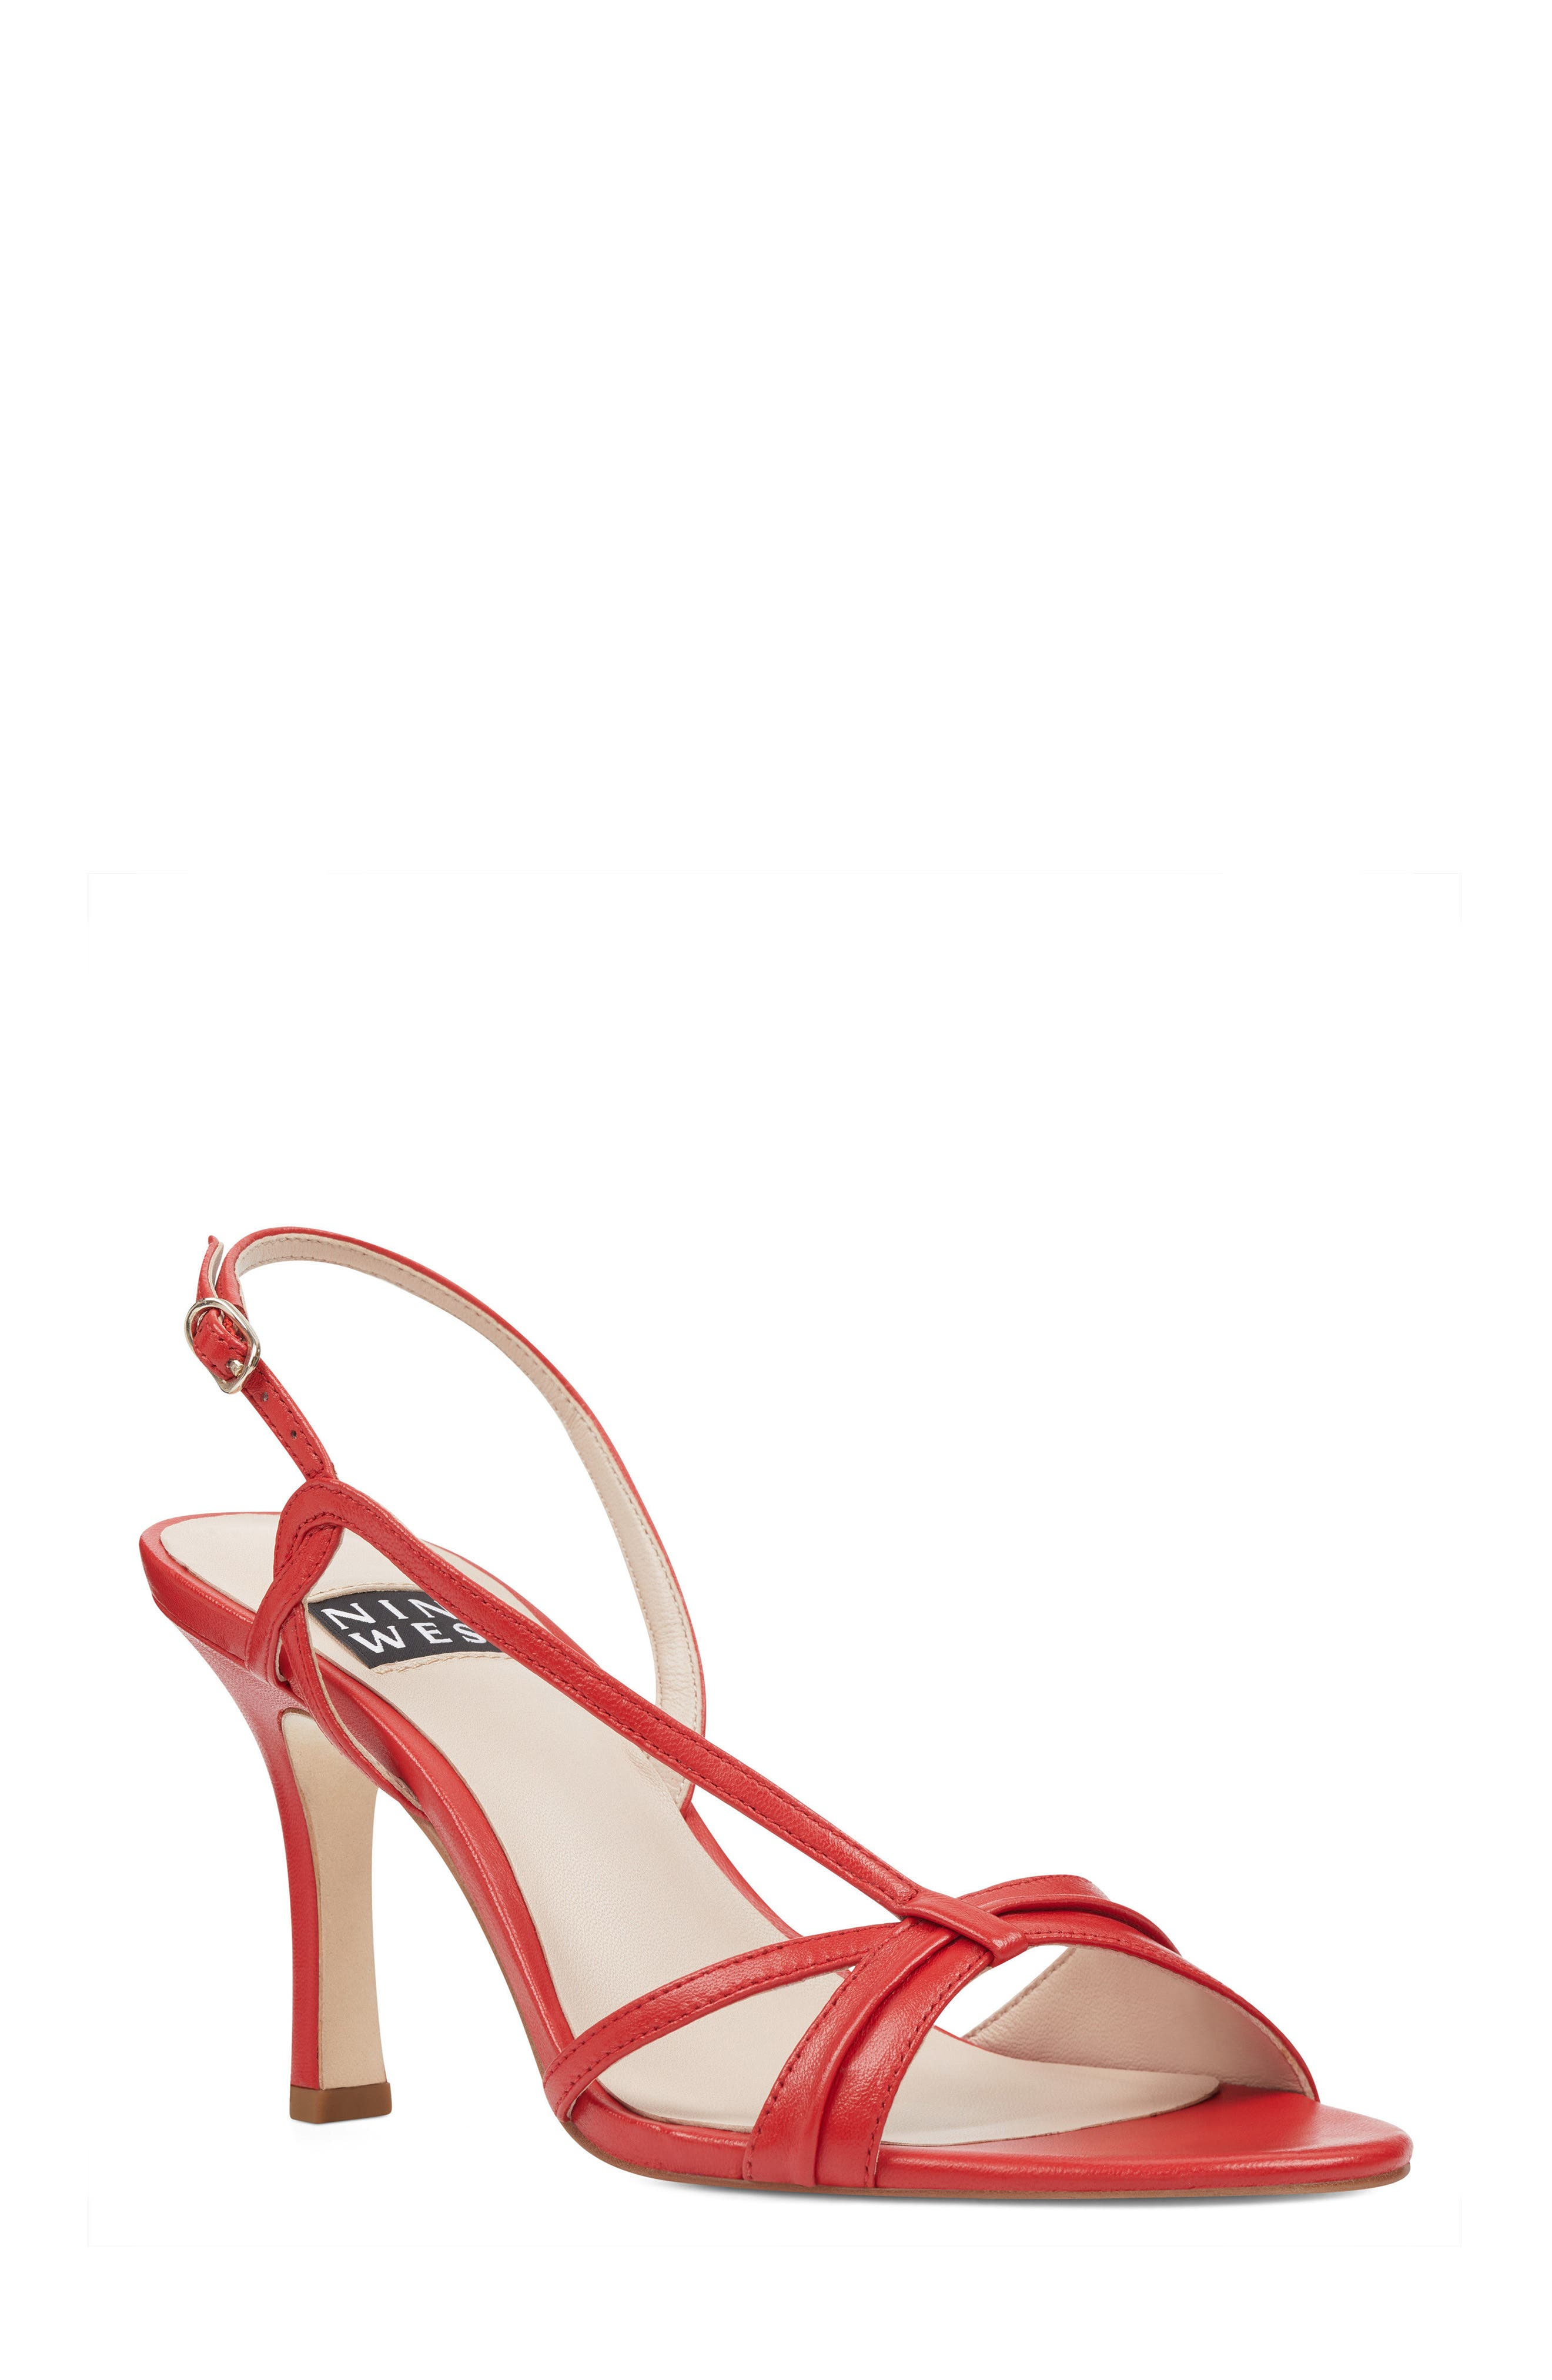 Accolia - 40th Anniversary Capsule Collection Sandal,                         Main,                         color, Red Leather